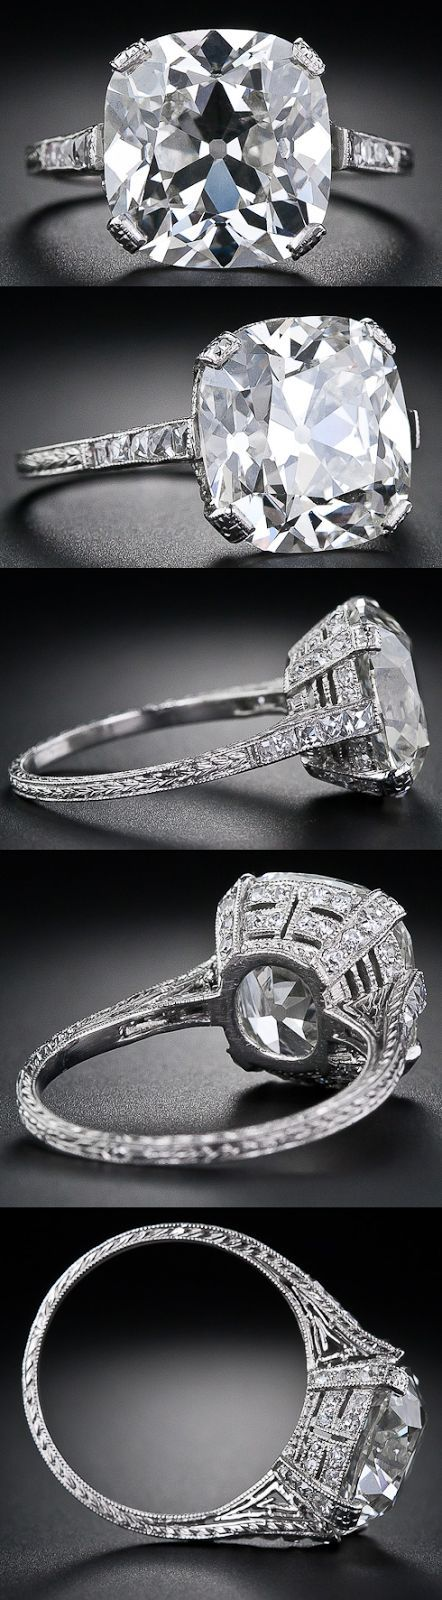 Multi-view: 6.48 carat antique cushion cut diamond ring. Via Diamonds in the Library.